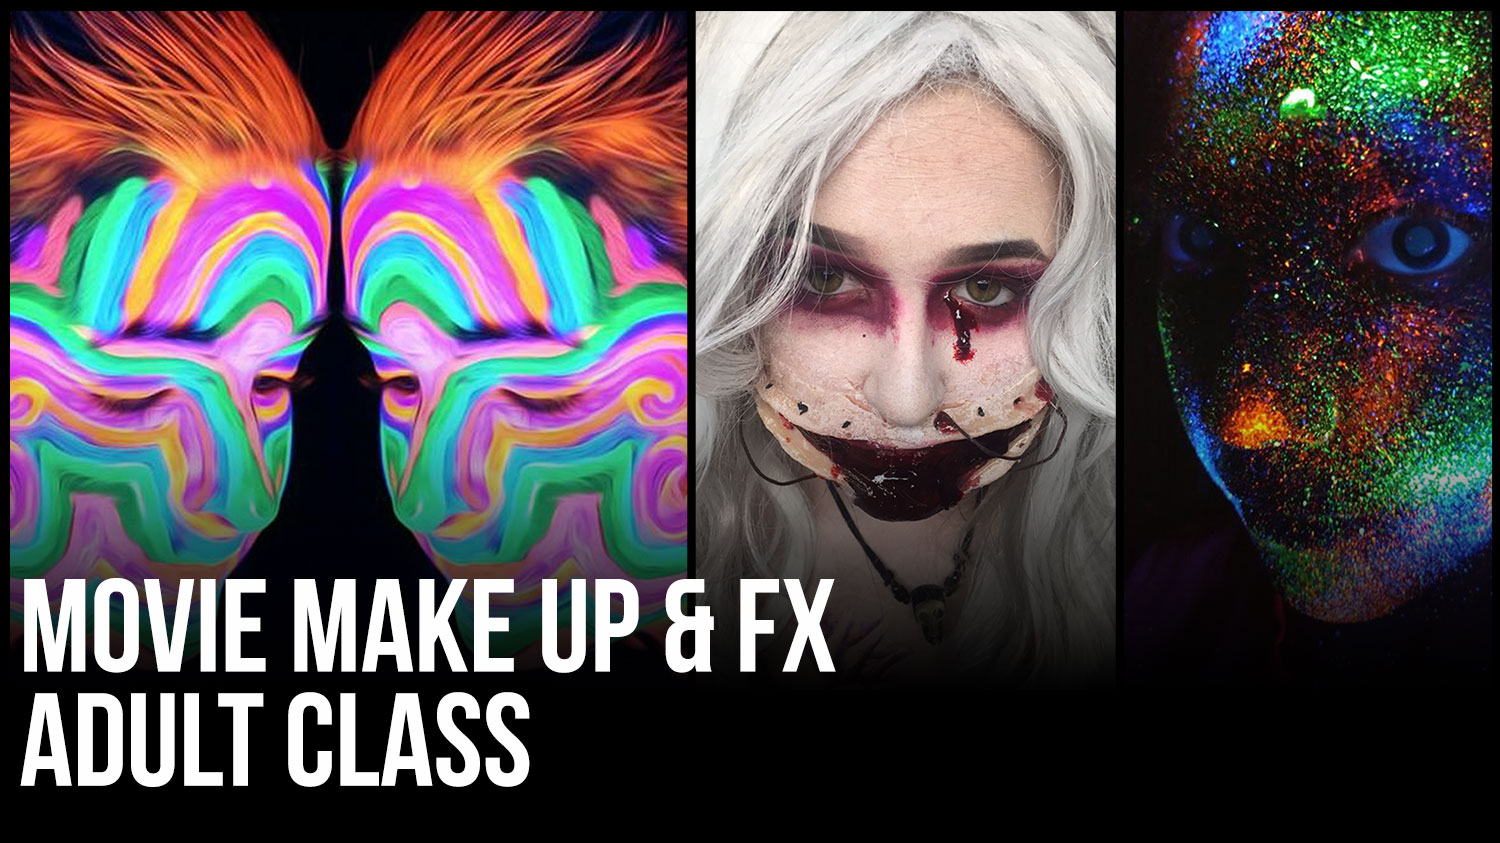 Details of our Movie Make Up and FX class for Adults